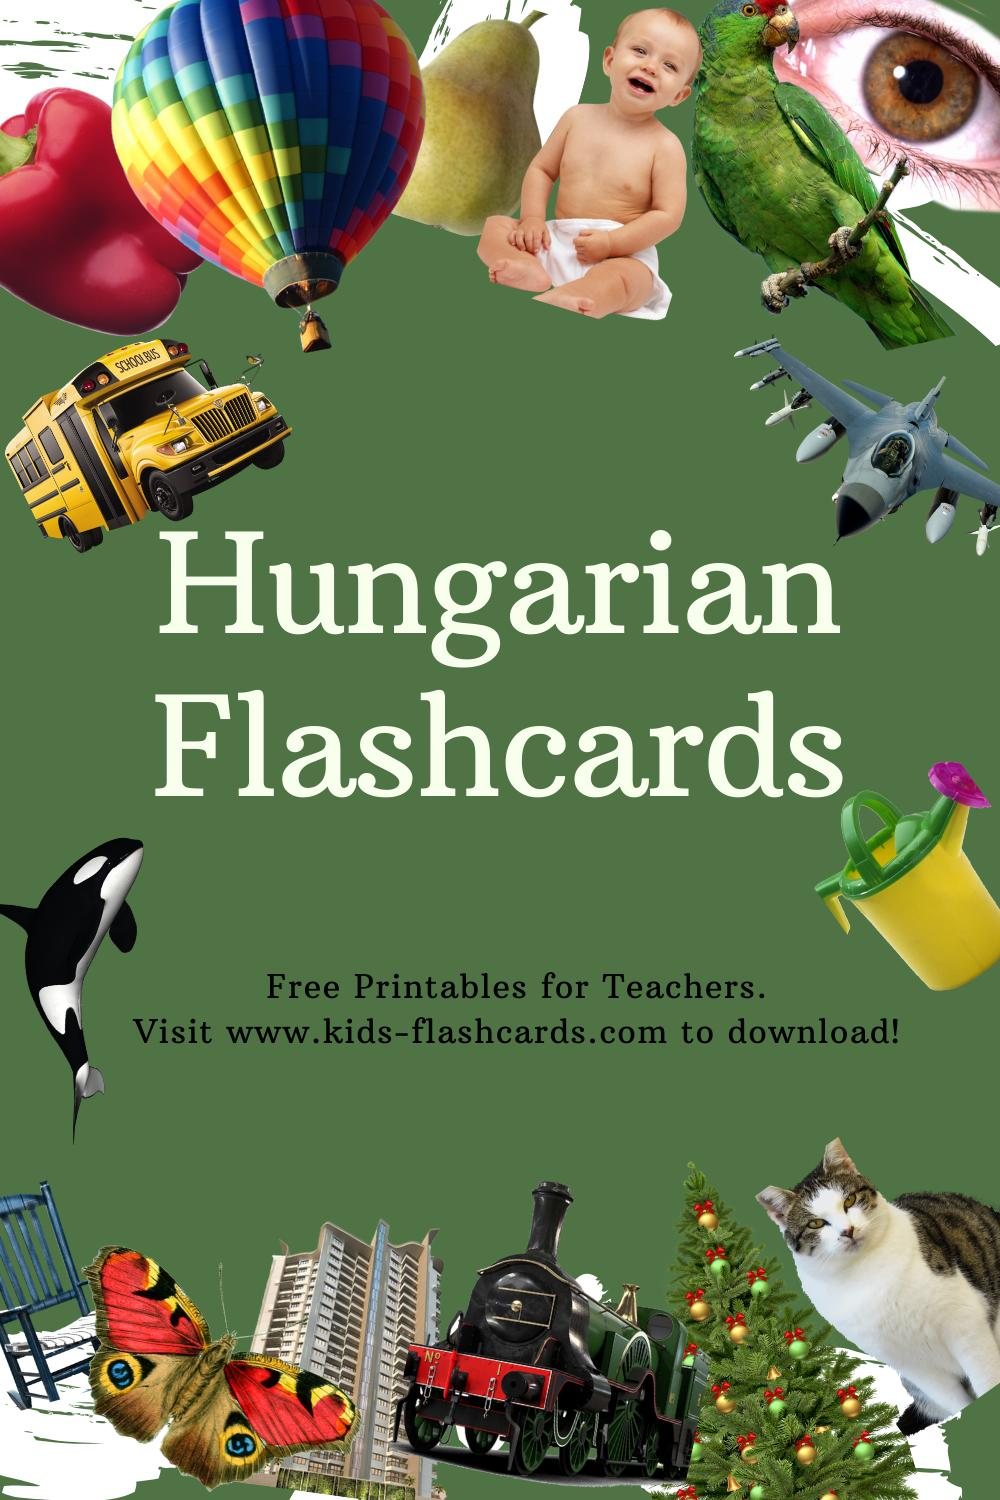 Worksheets to learn Hungarian language